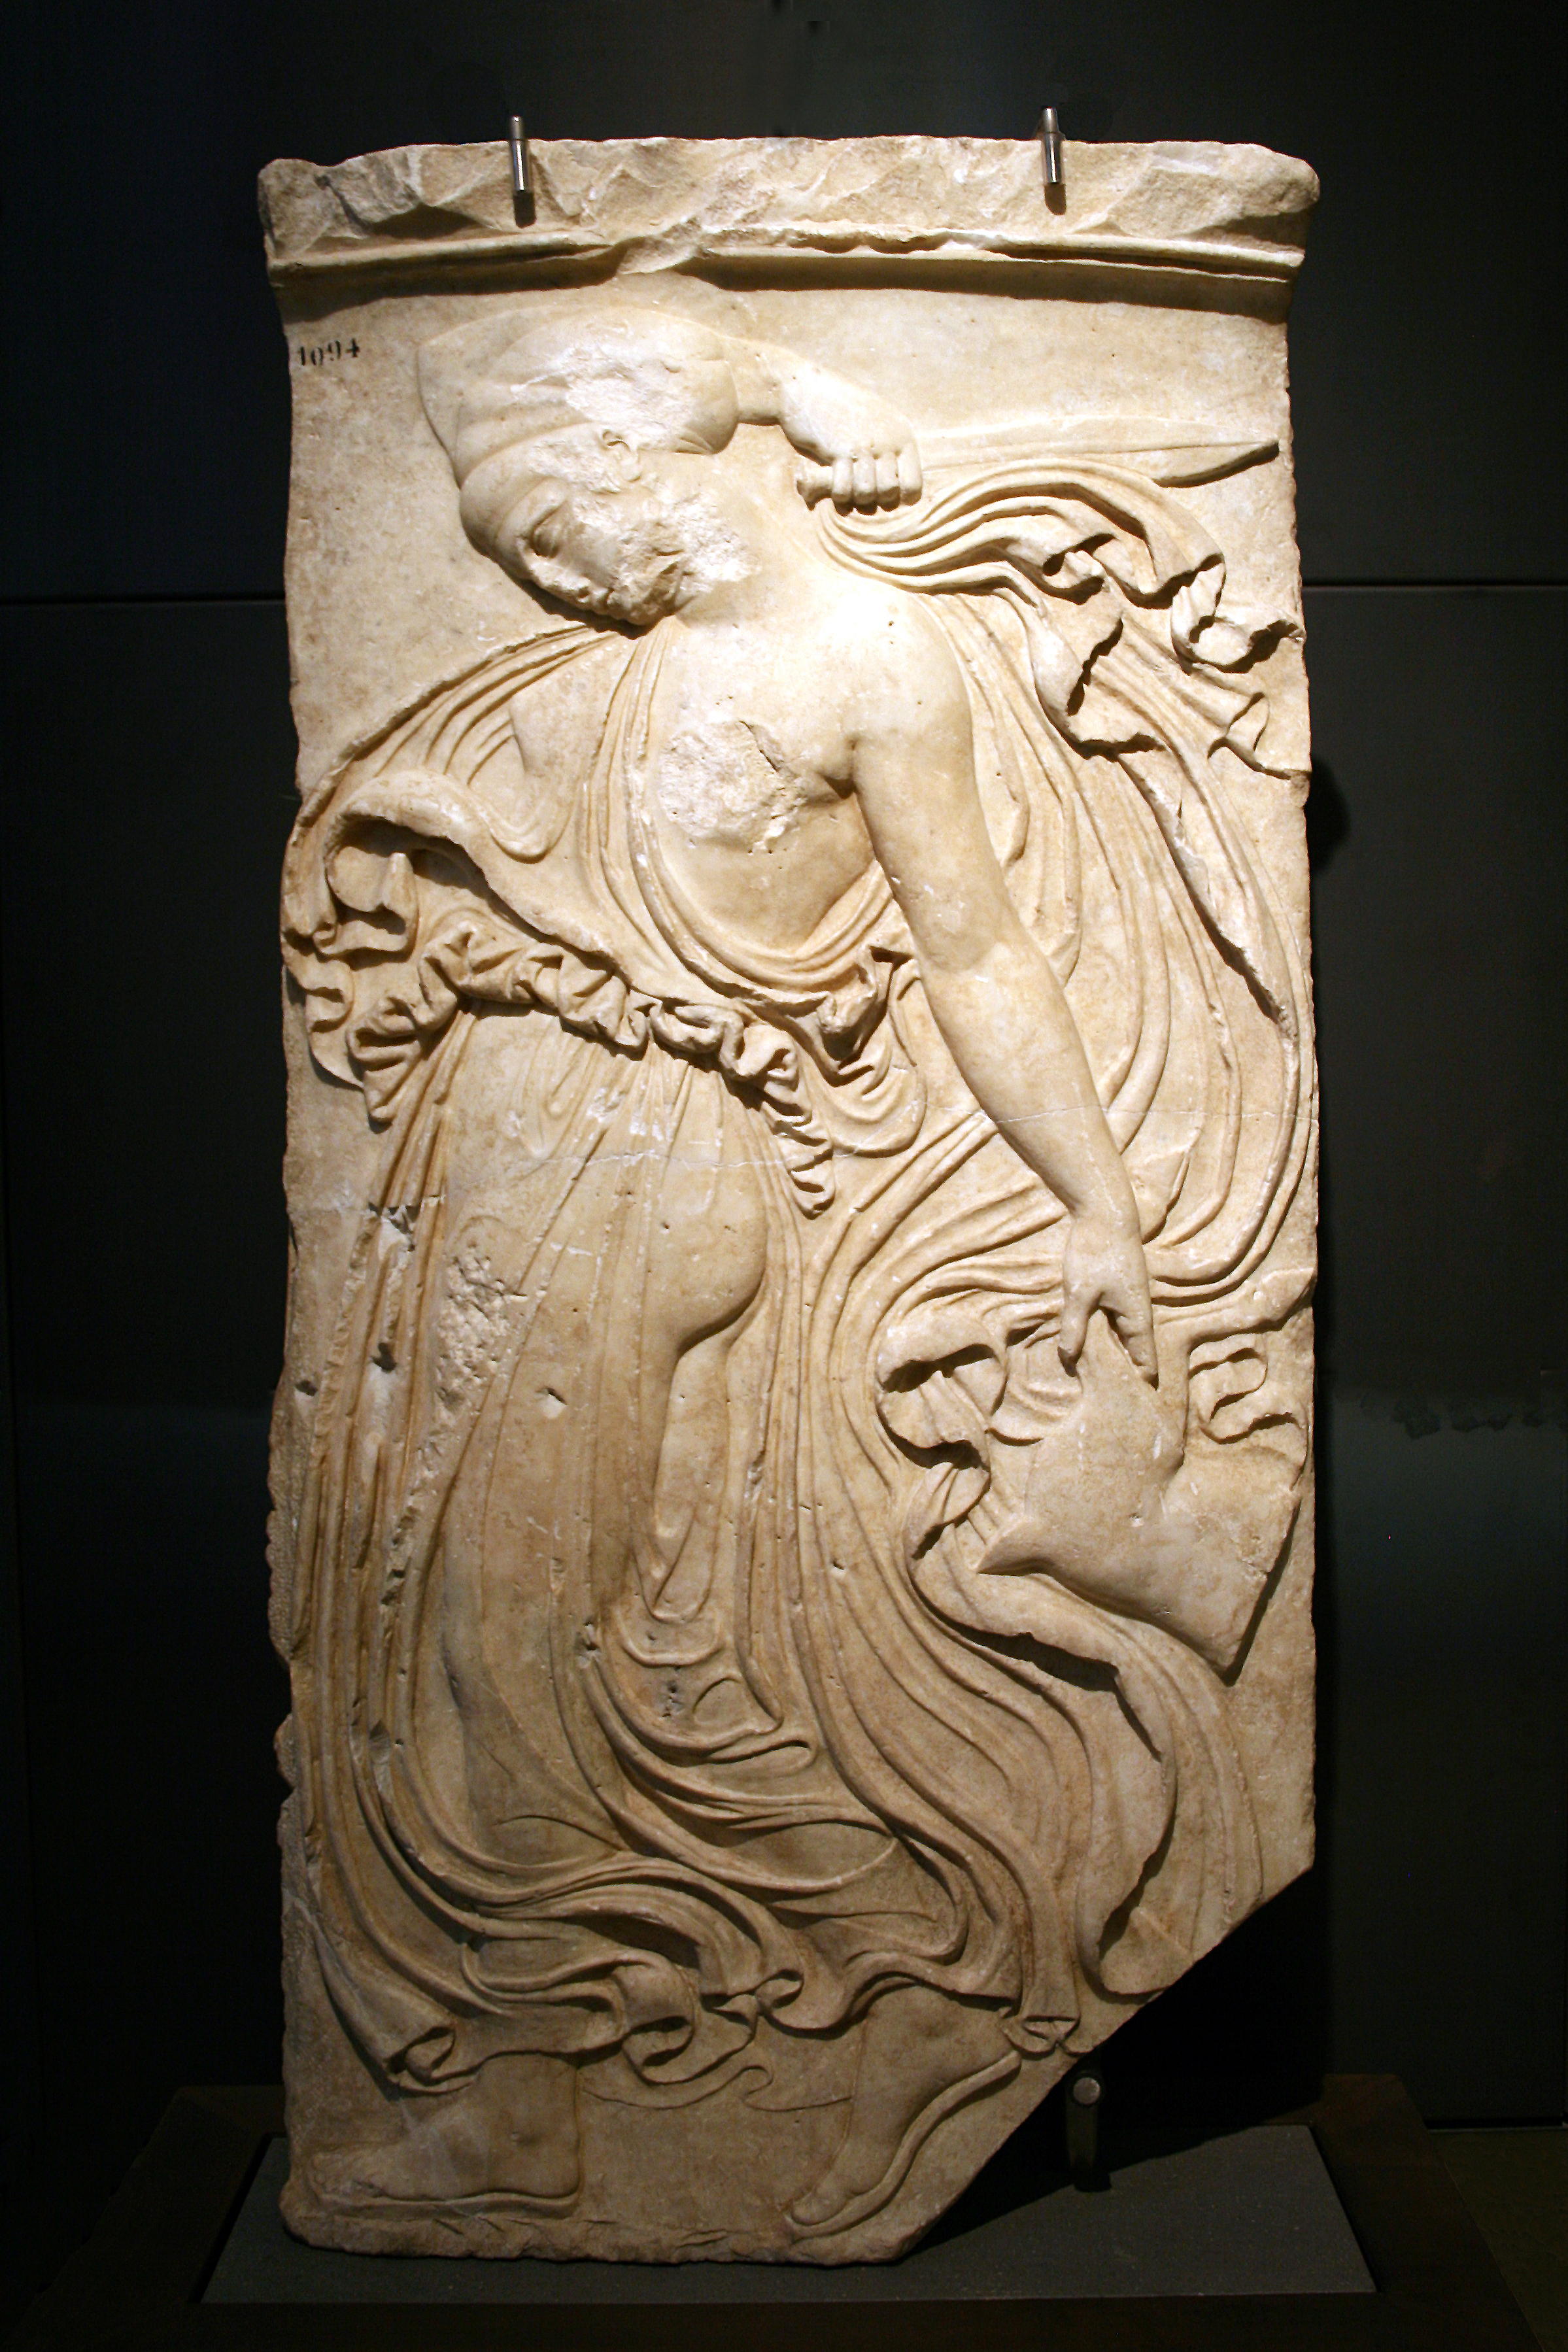 Dancing Maenad from the Capitoline Museums